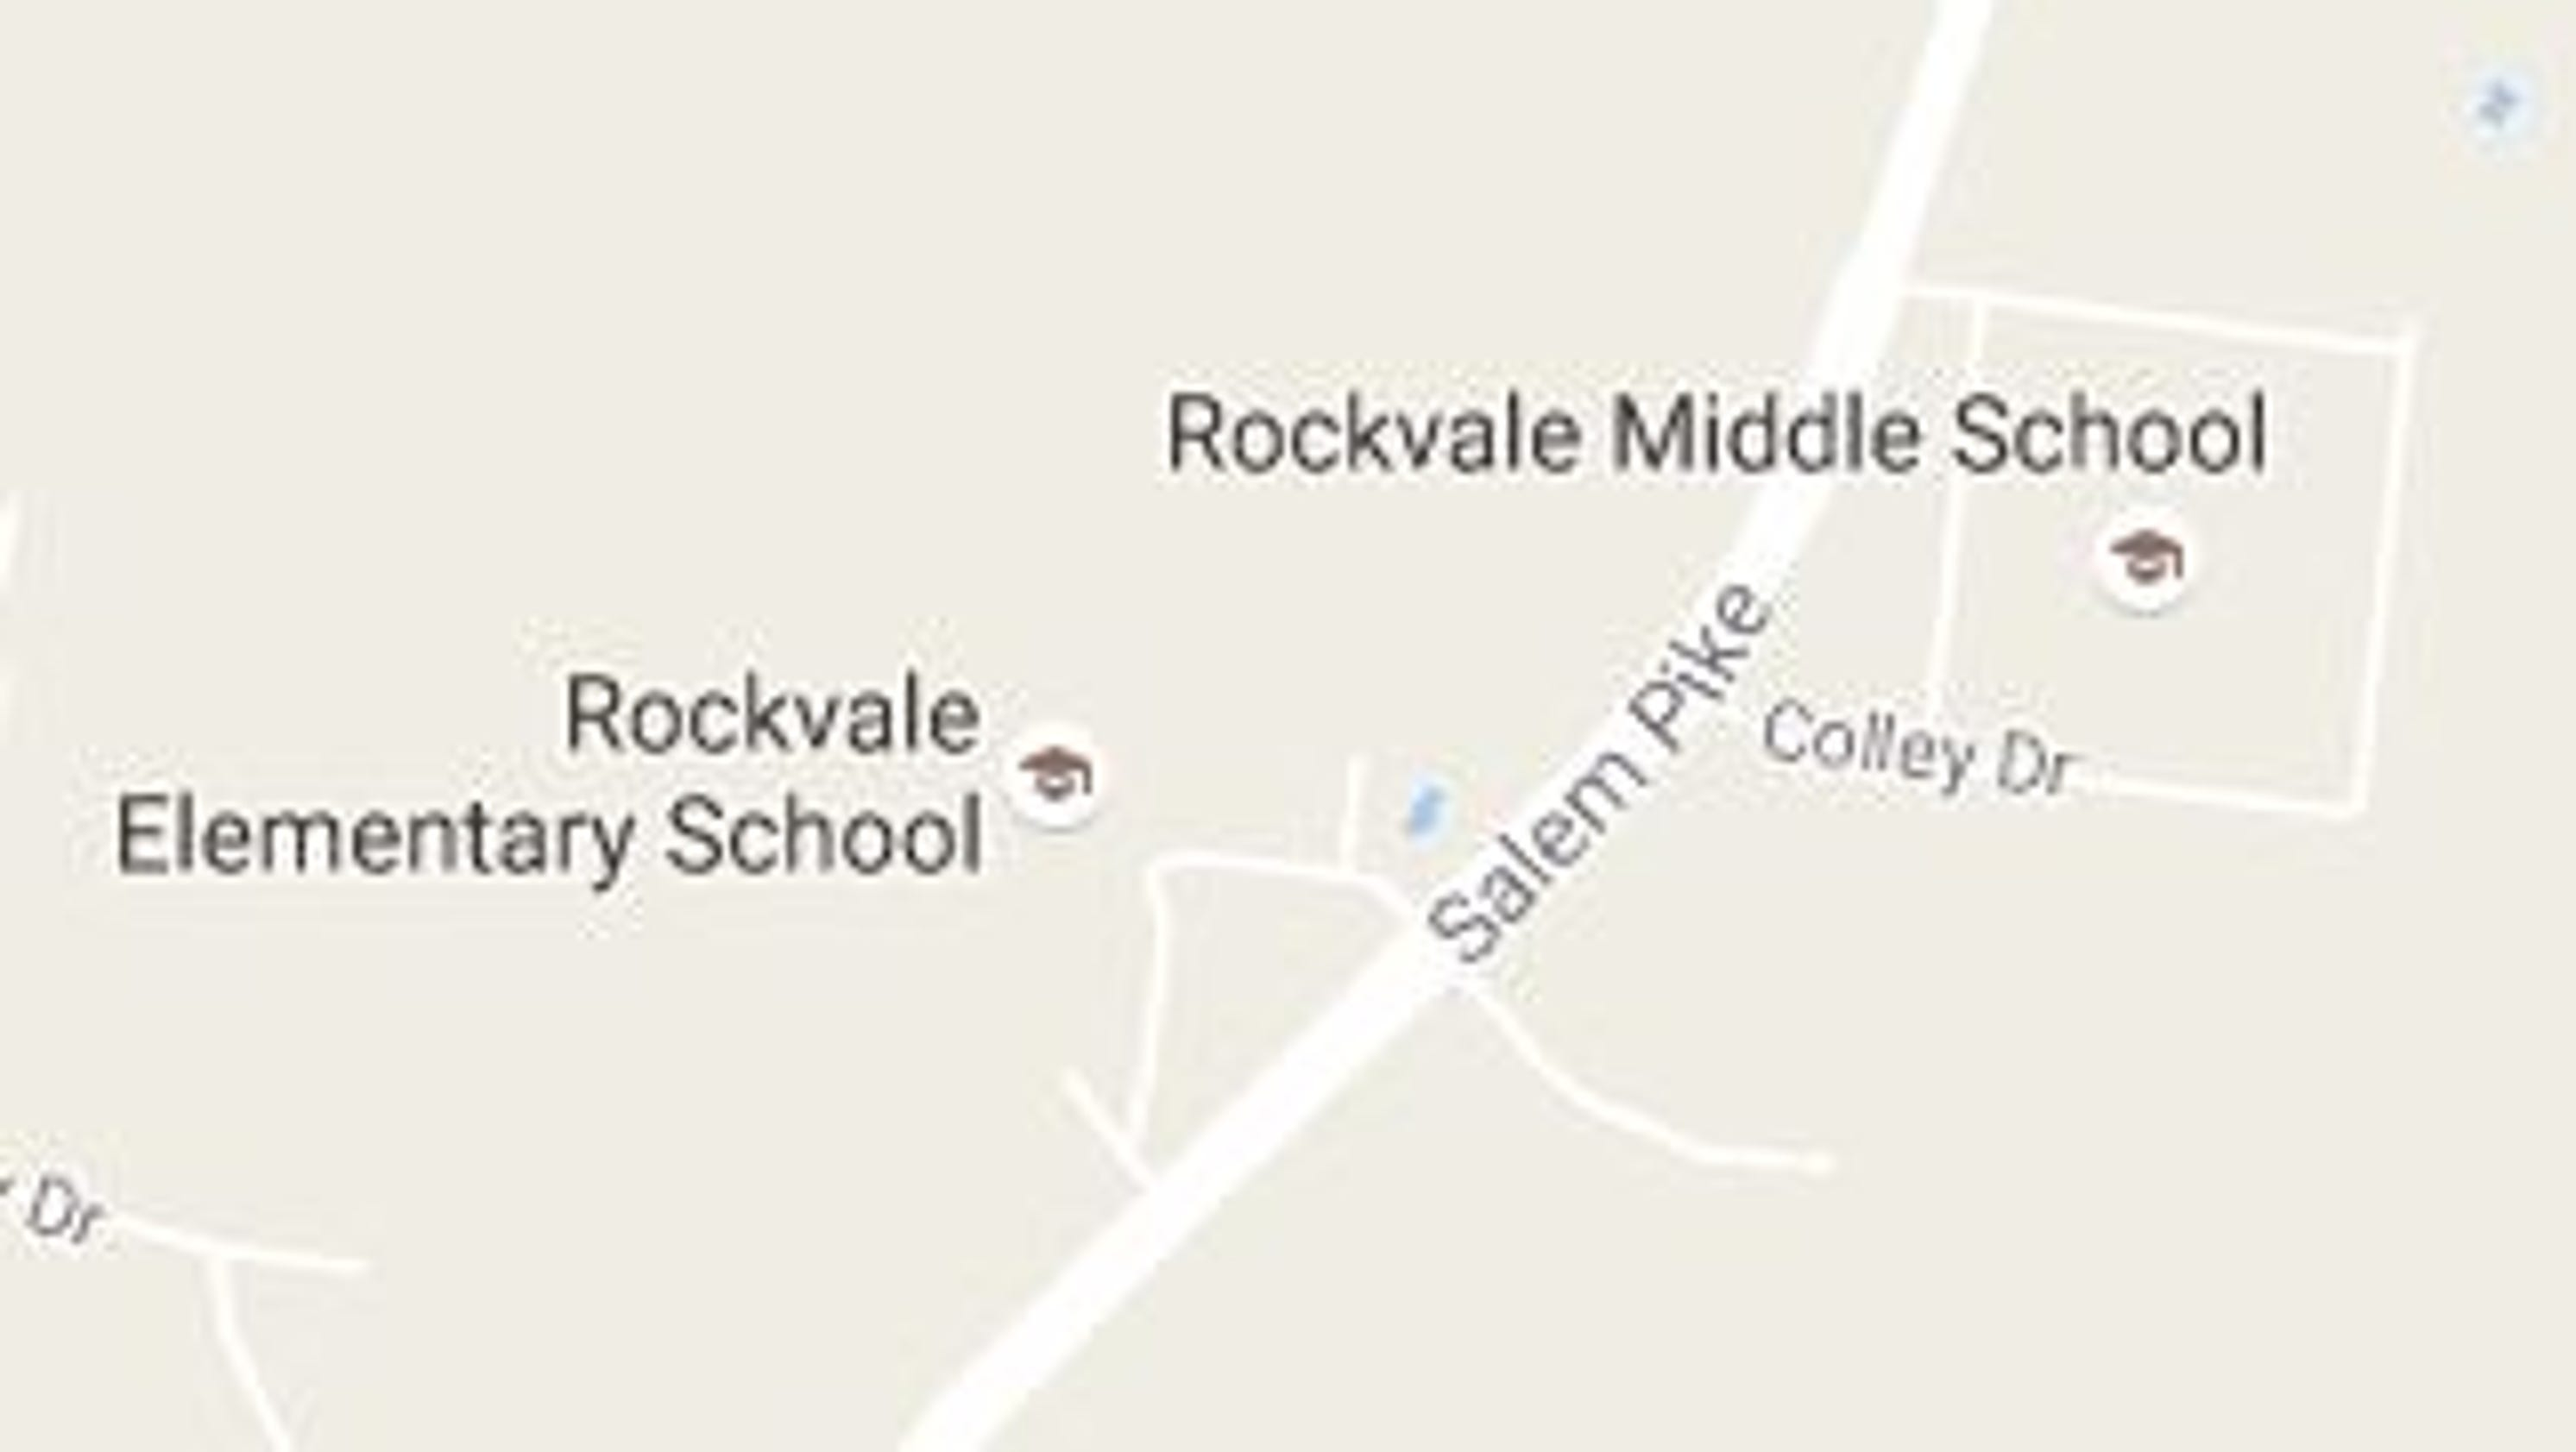 rockvale chat Find houses for sale in your area - rockvale, tn contact a local agent on homefinder.